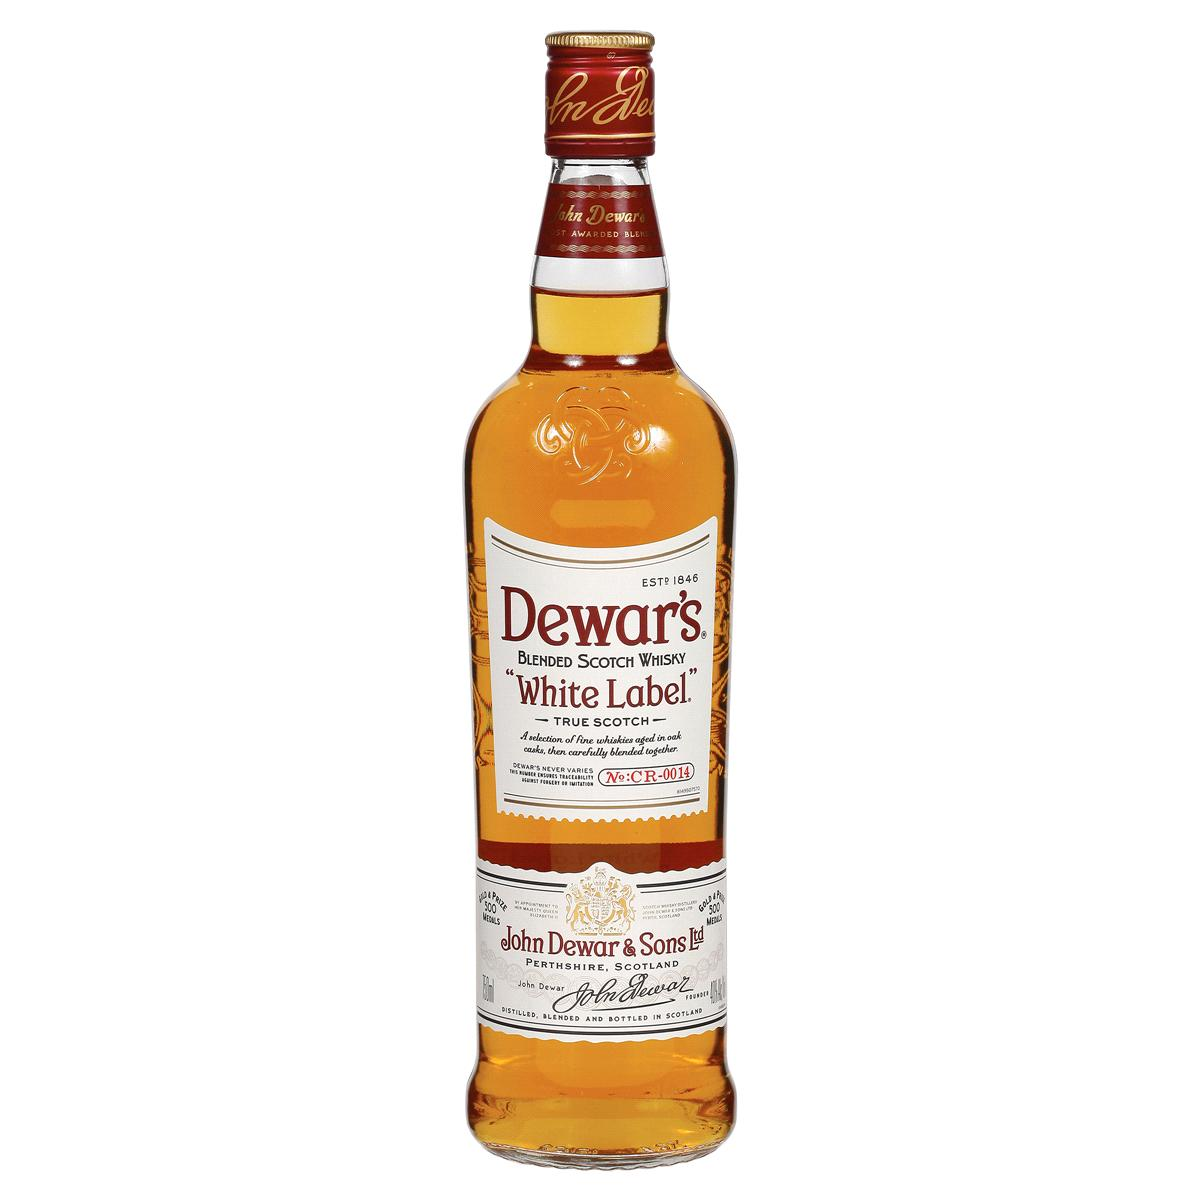 stl>Dewar's White Label Scotch Whisky - 750ml